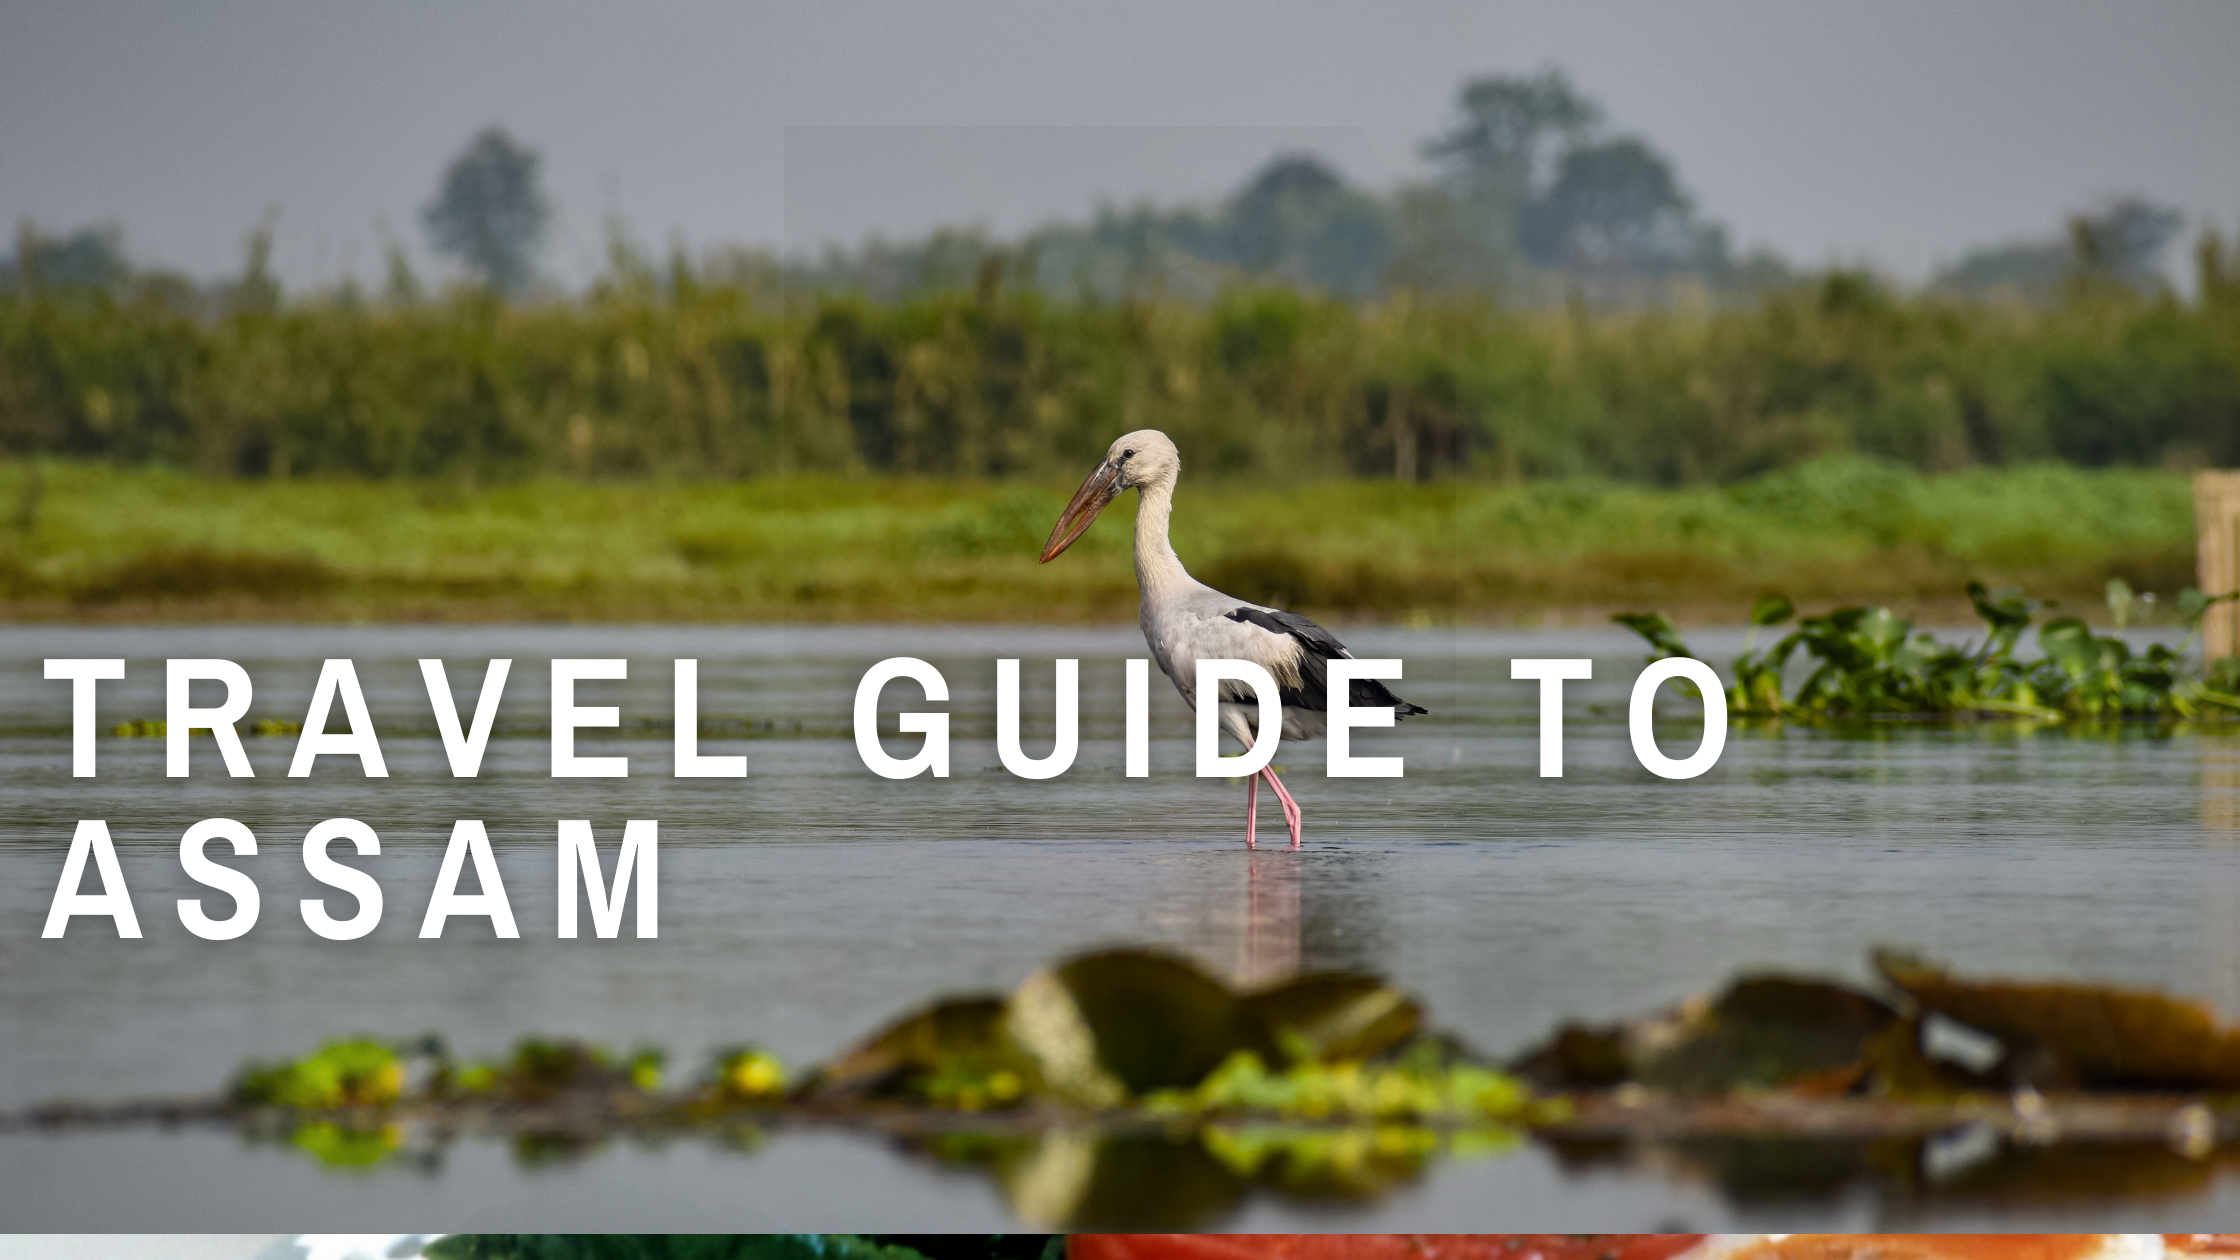 A Travel guide to Assam